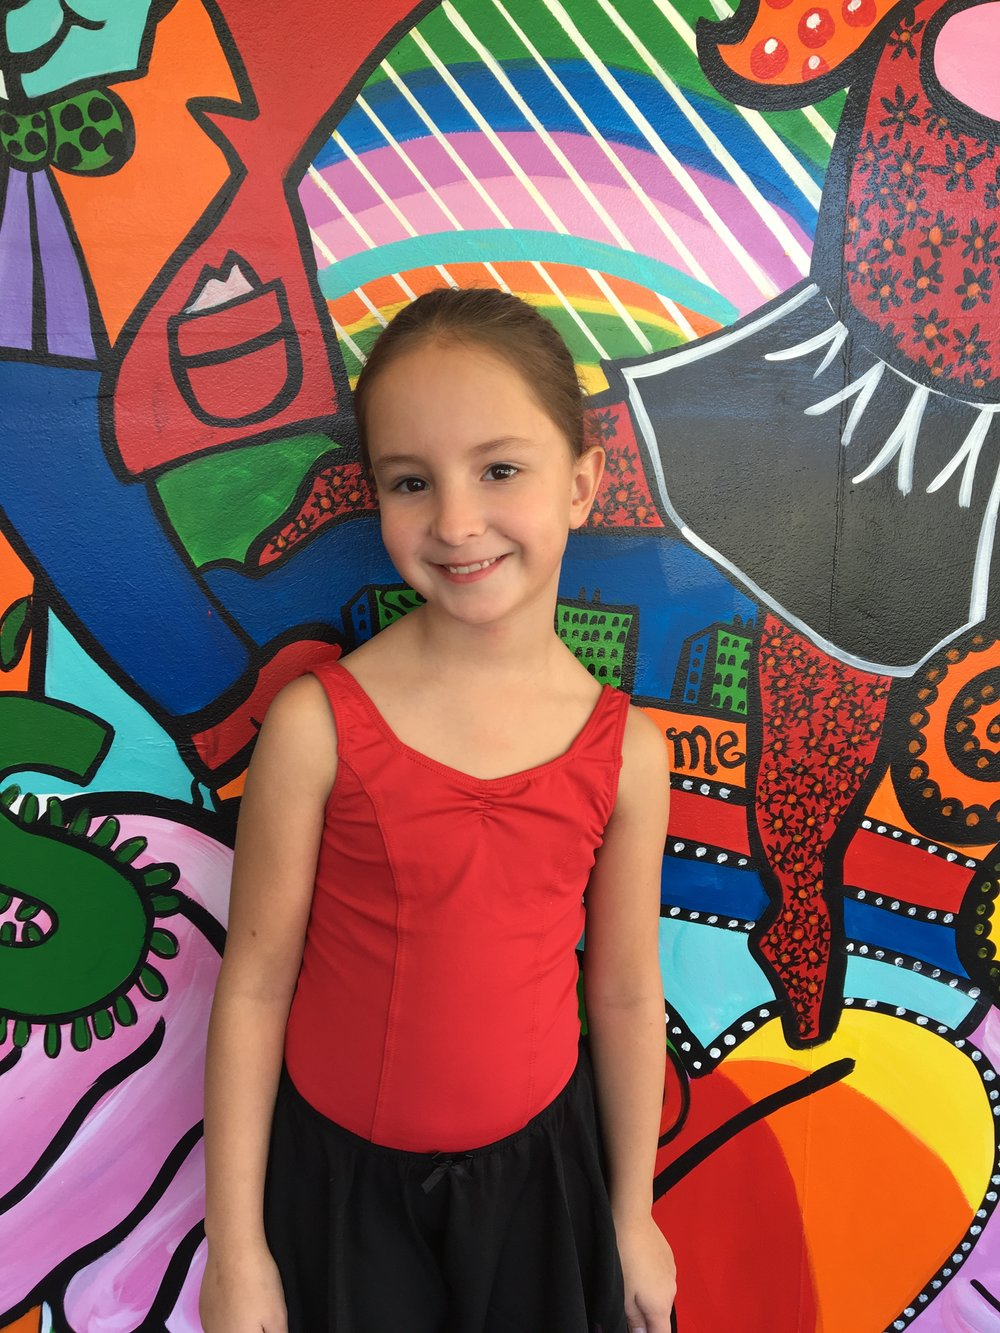 Laina Ligamari's favorite style of dance is salsa and modern. When she grows up she wants to be a singer. She loves reading and the color black. She believes dancing at Forevermore is a great learning experience. A fun fact about Laina is that she can burp the alphabet.